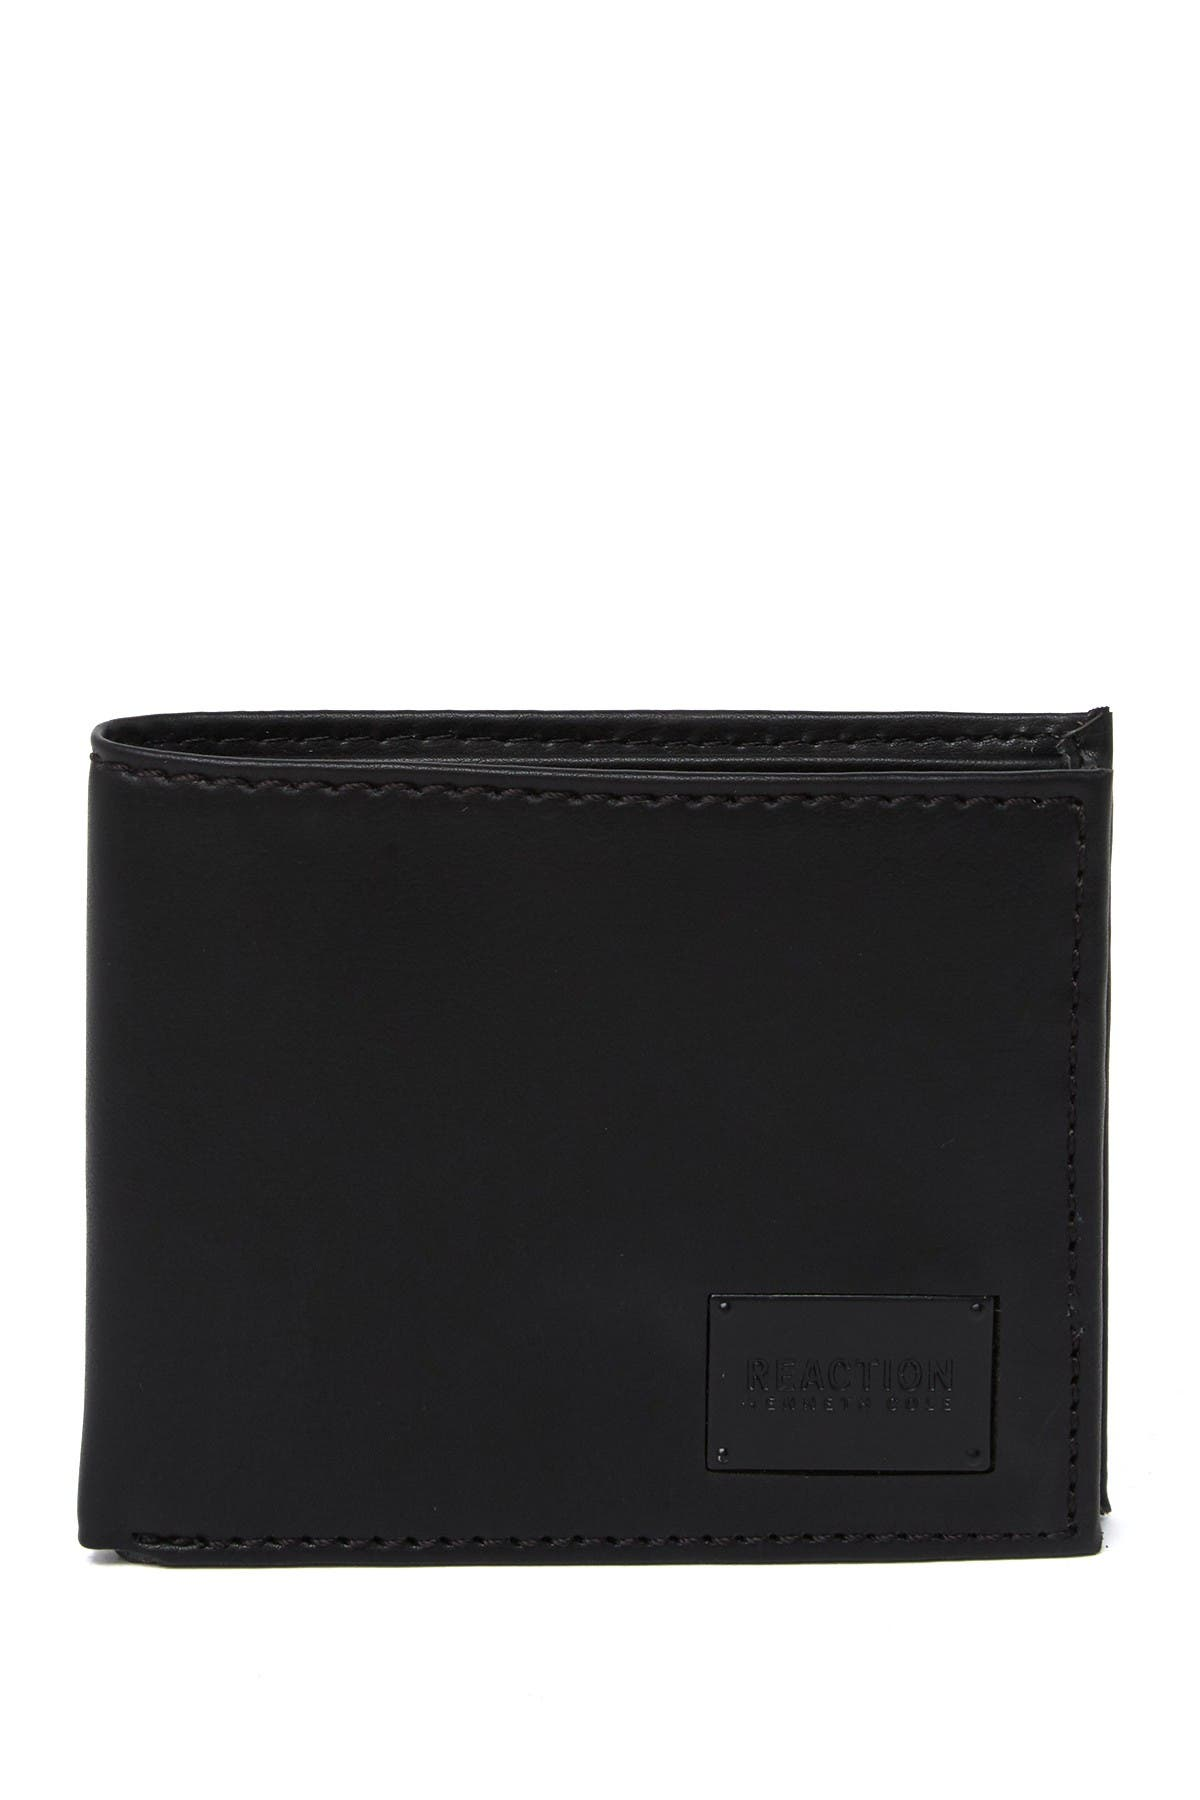 Image of KENNETH COLE RFID Fiji Bifold Passcase